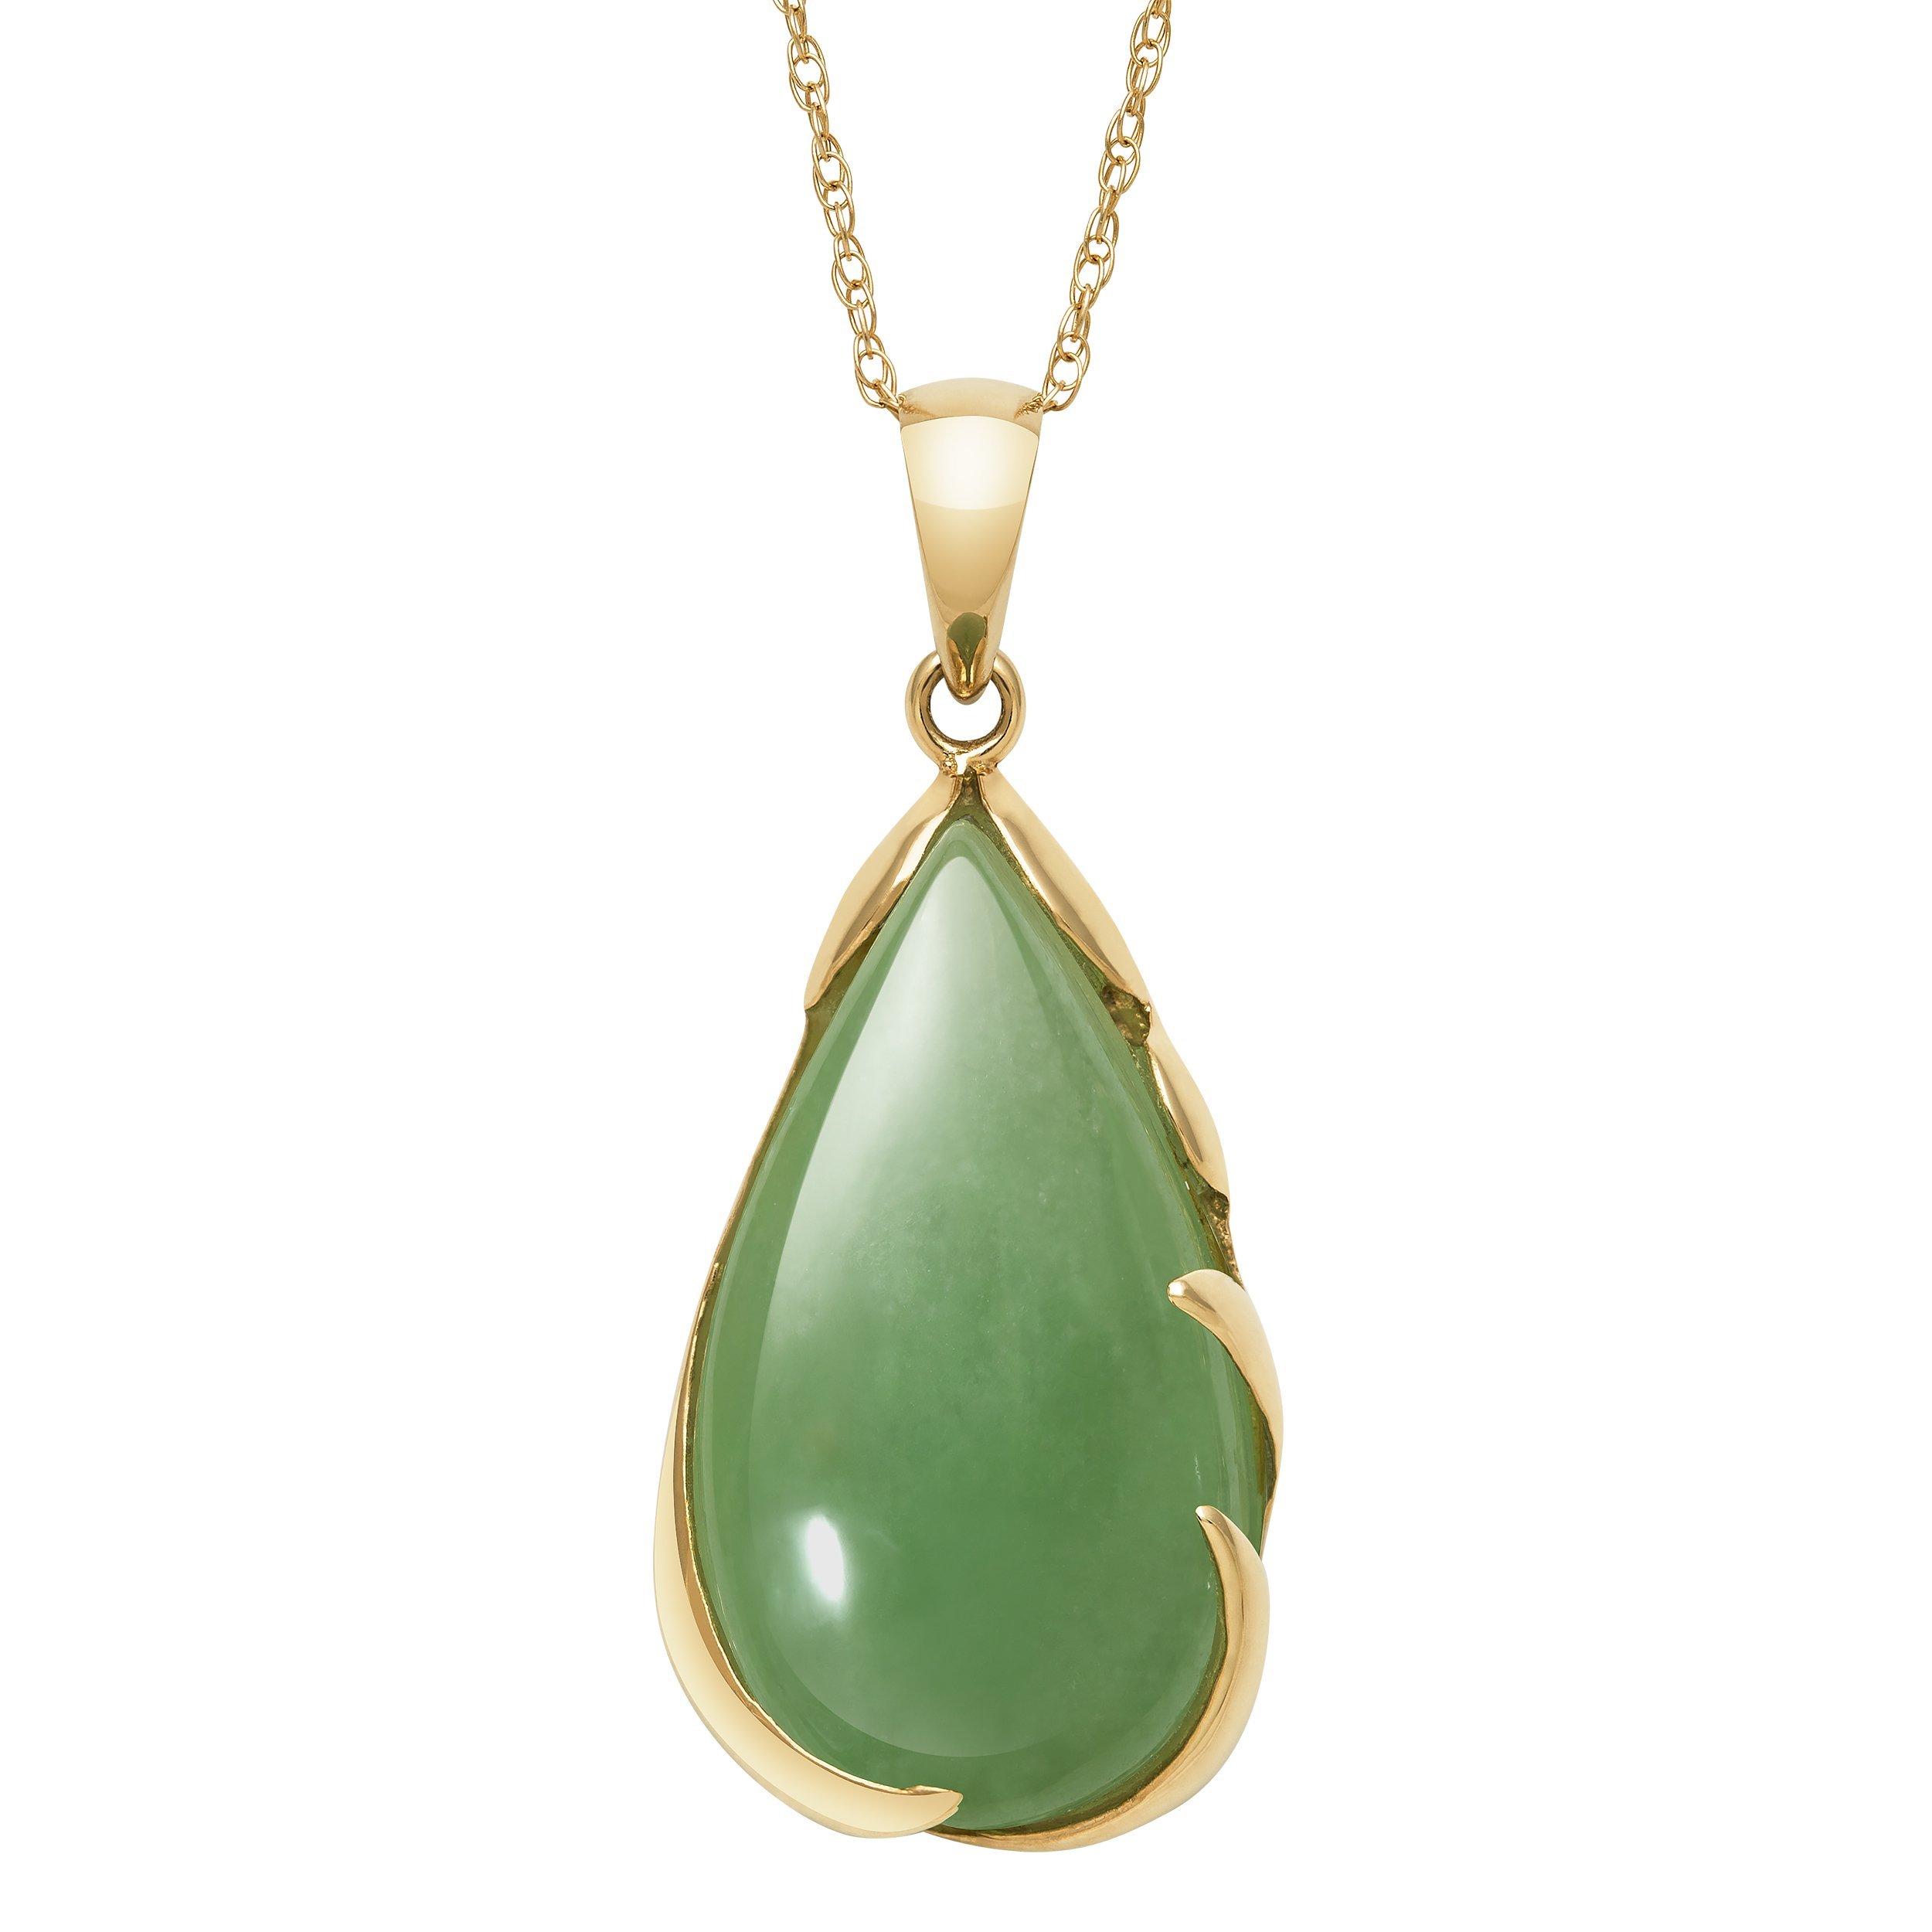 14k Yellow Gold Genuine Green Jade Teardrop Pendant Necklace,18'' by Pearlzzz